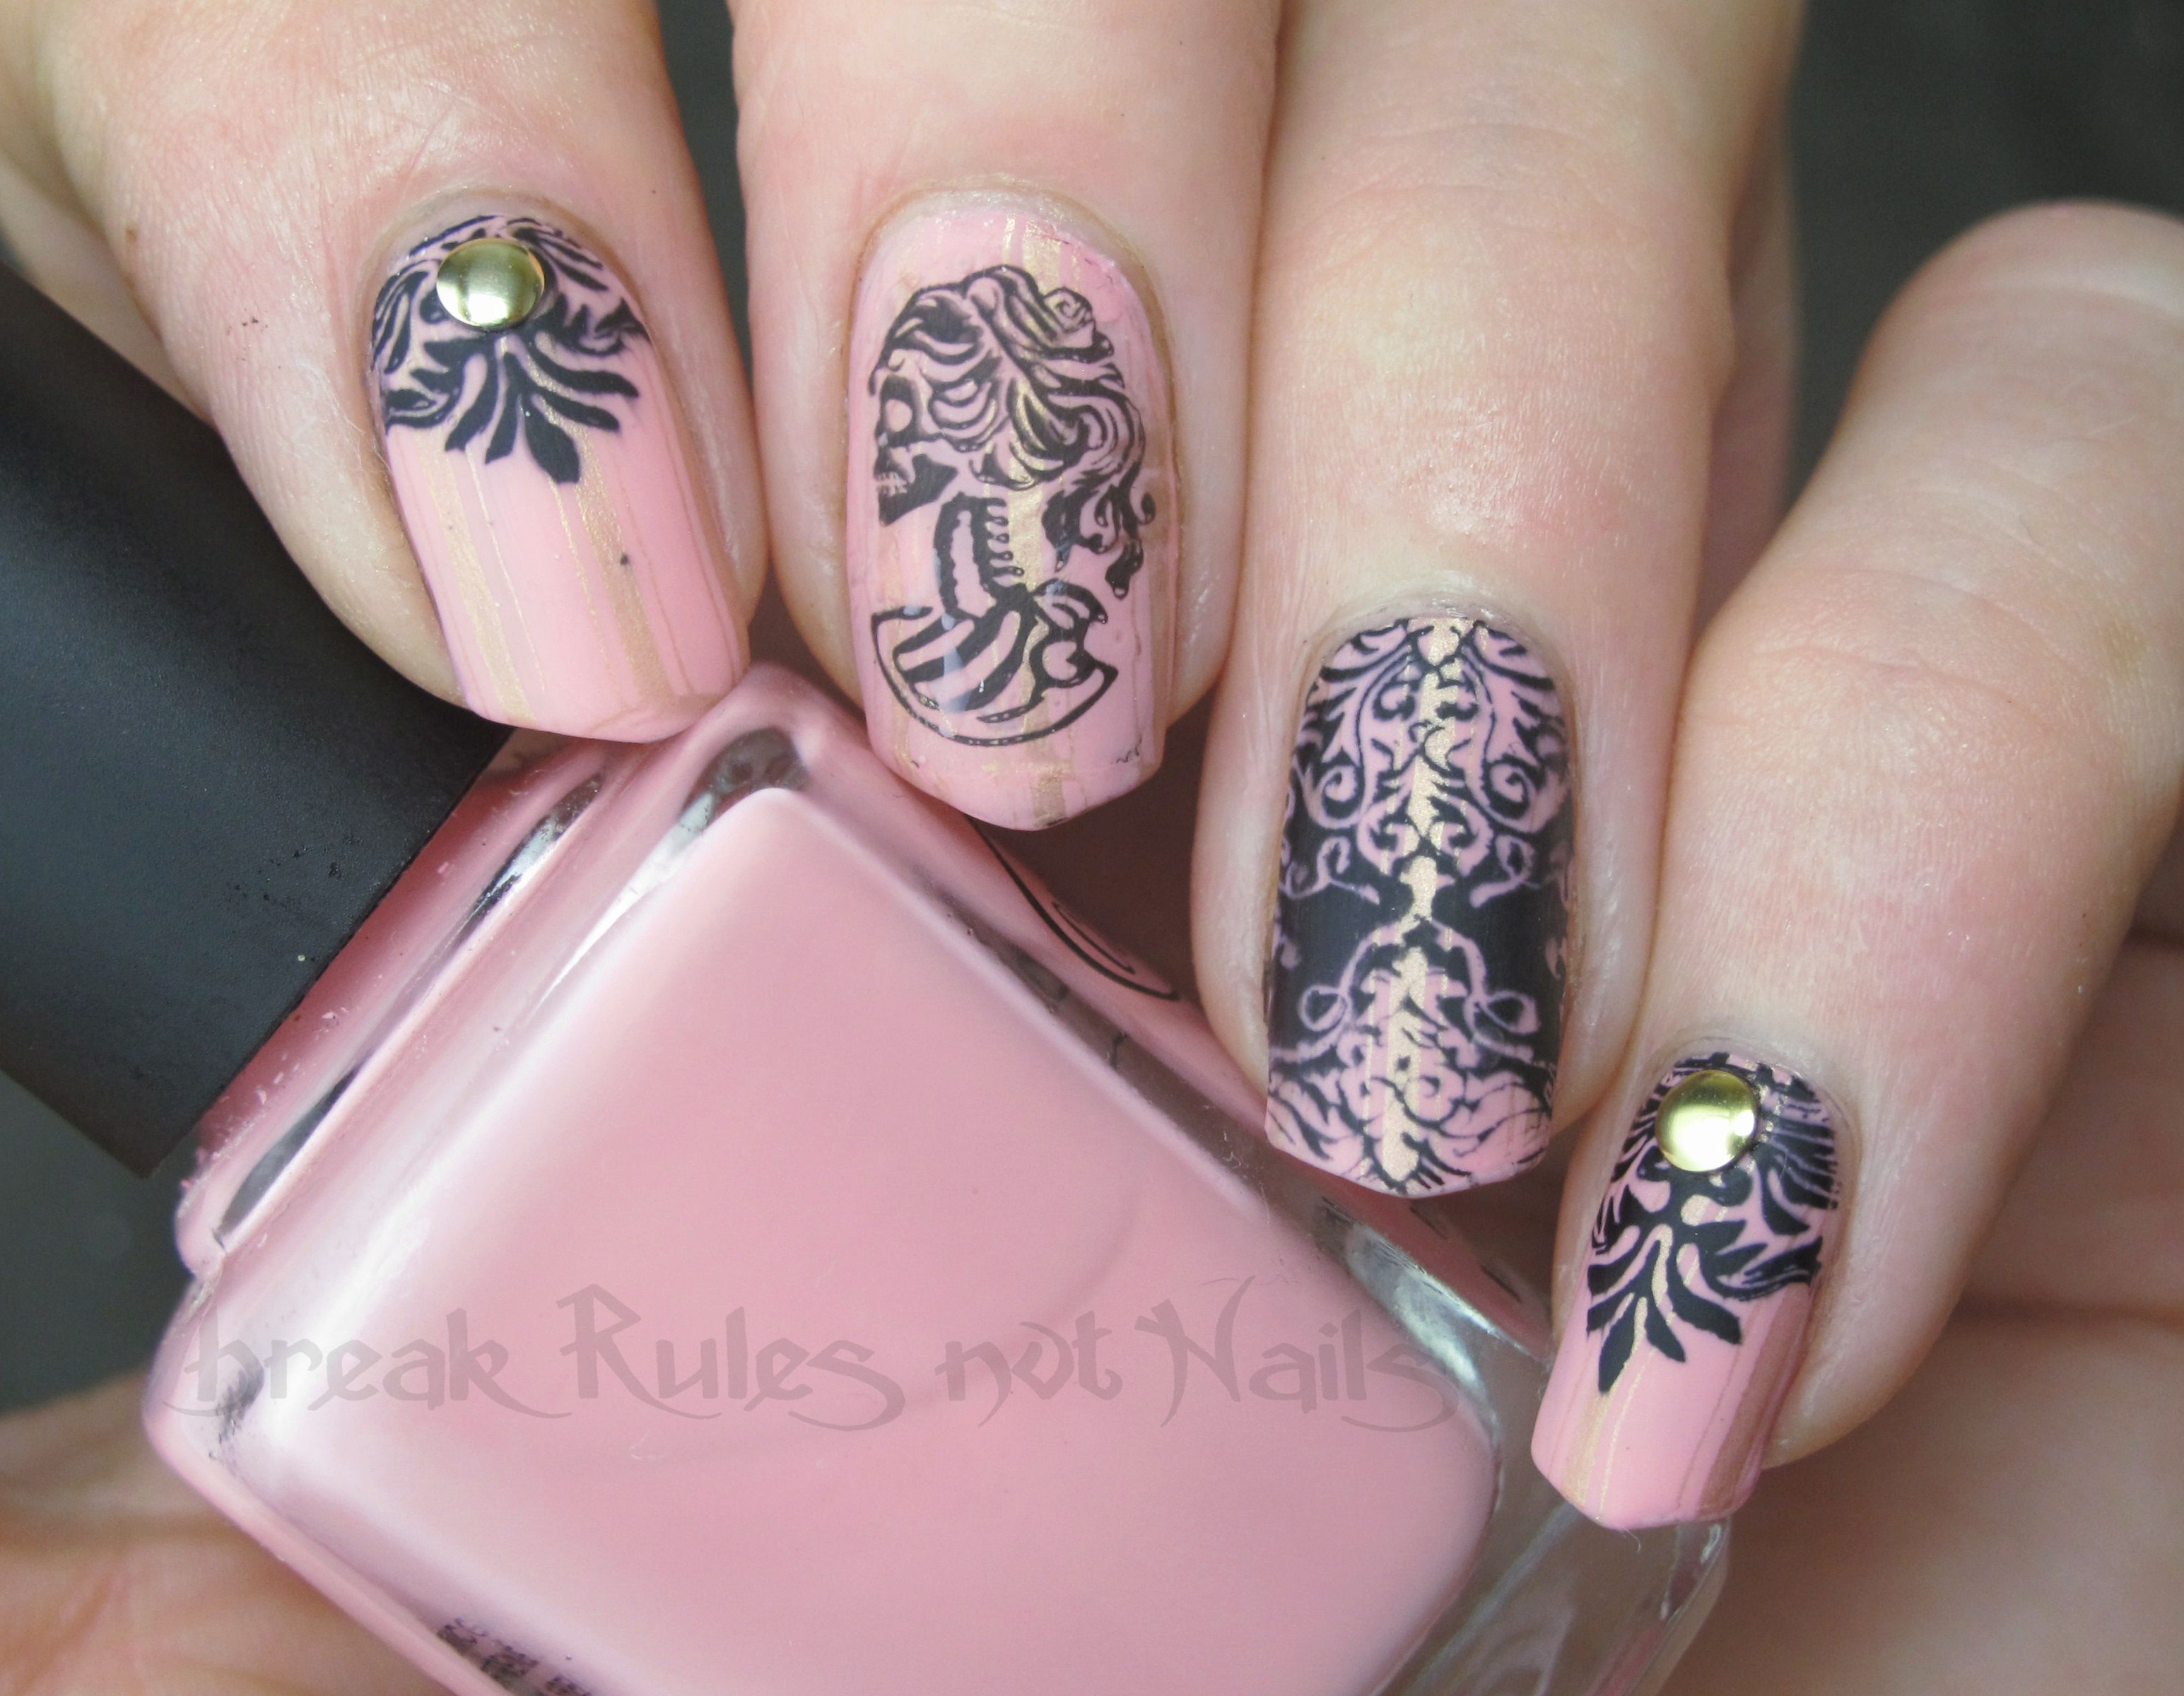 Gothic grunge nail art break rules not nails girly gothic 3 prinsesfo Image collections